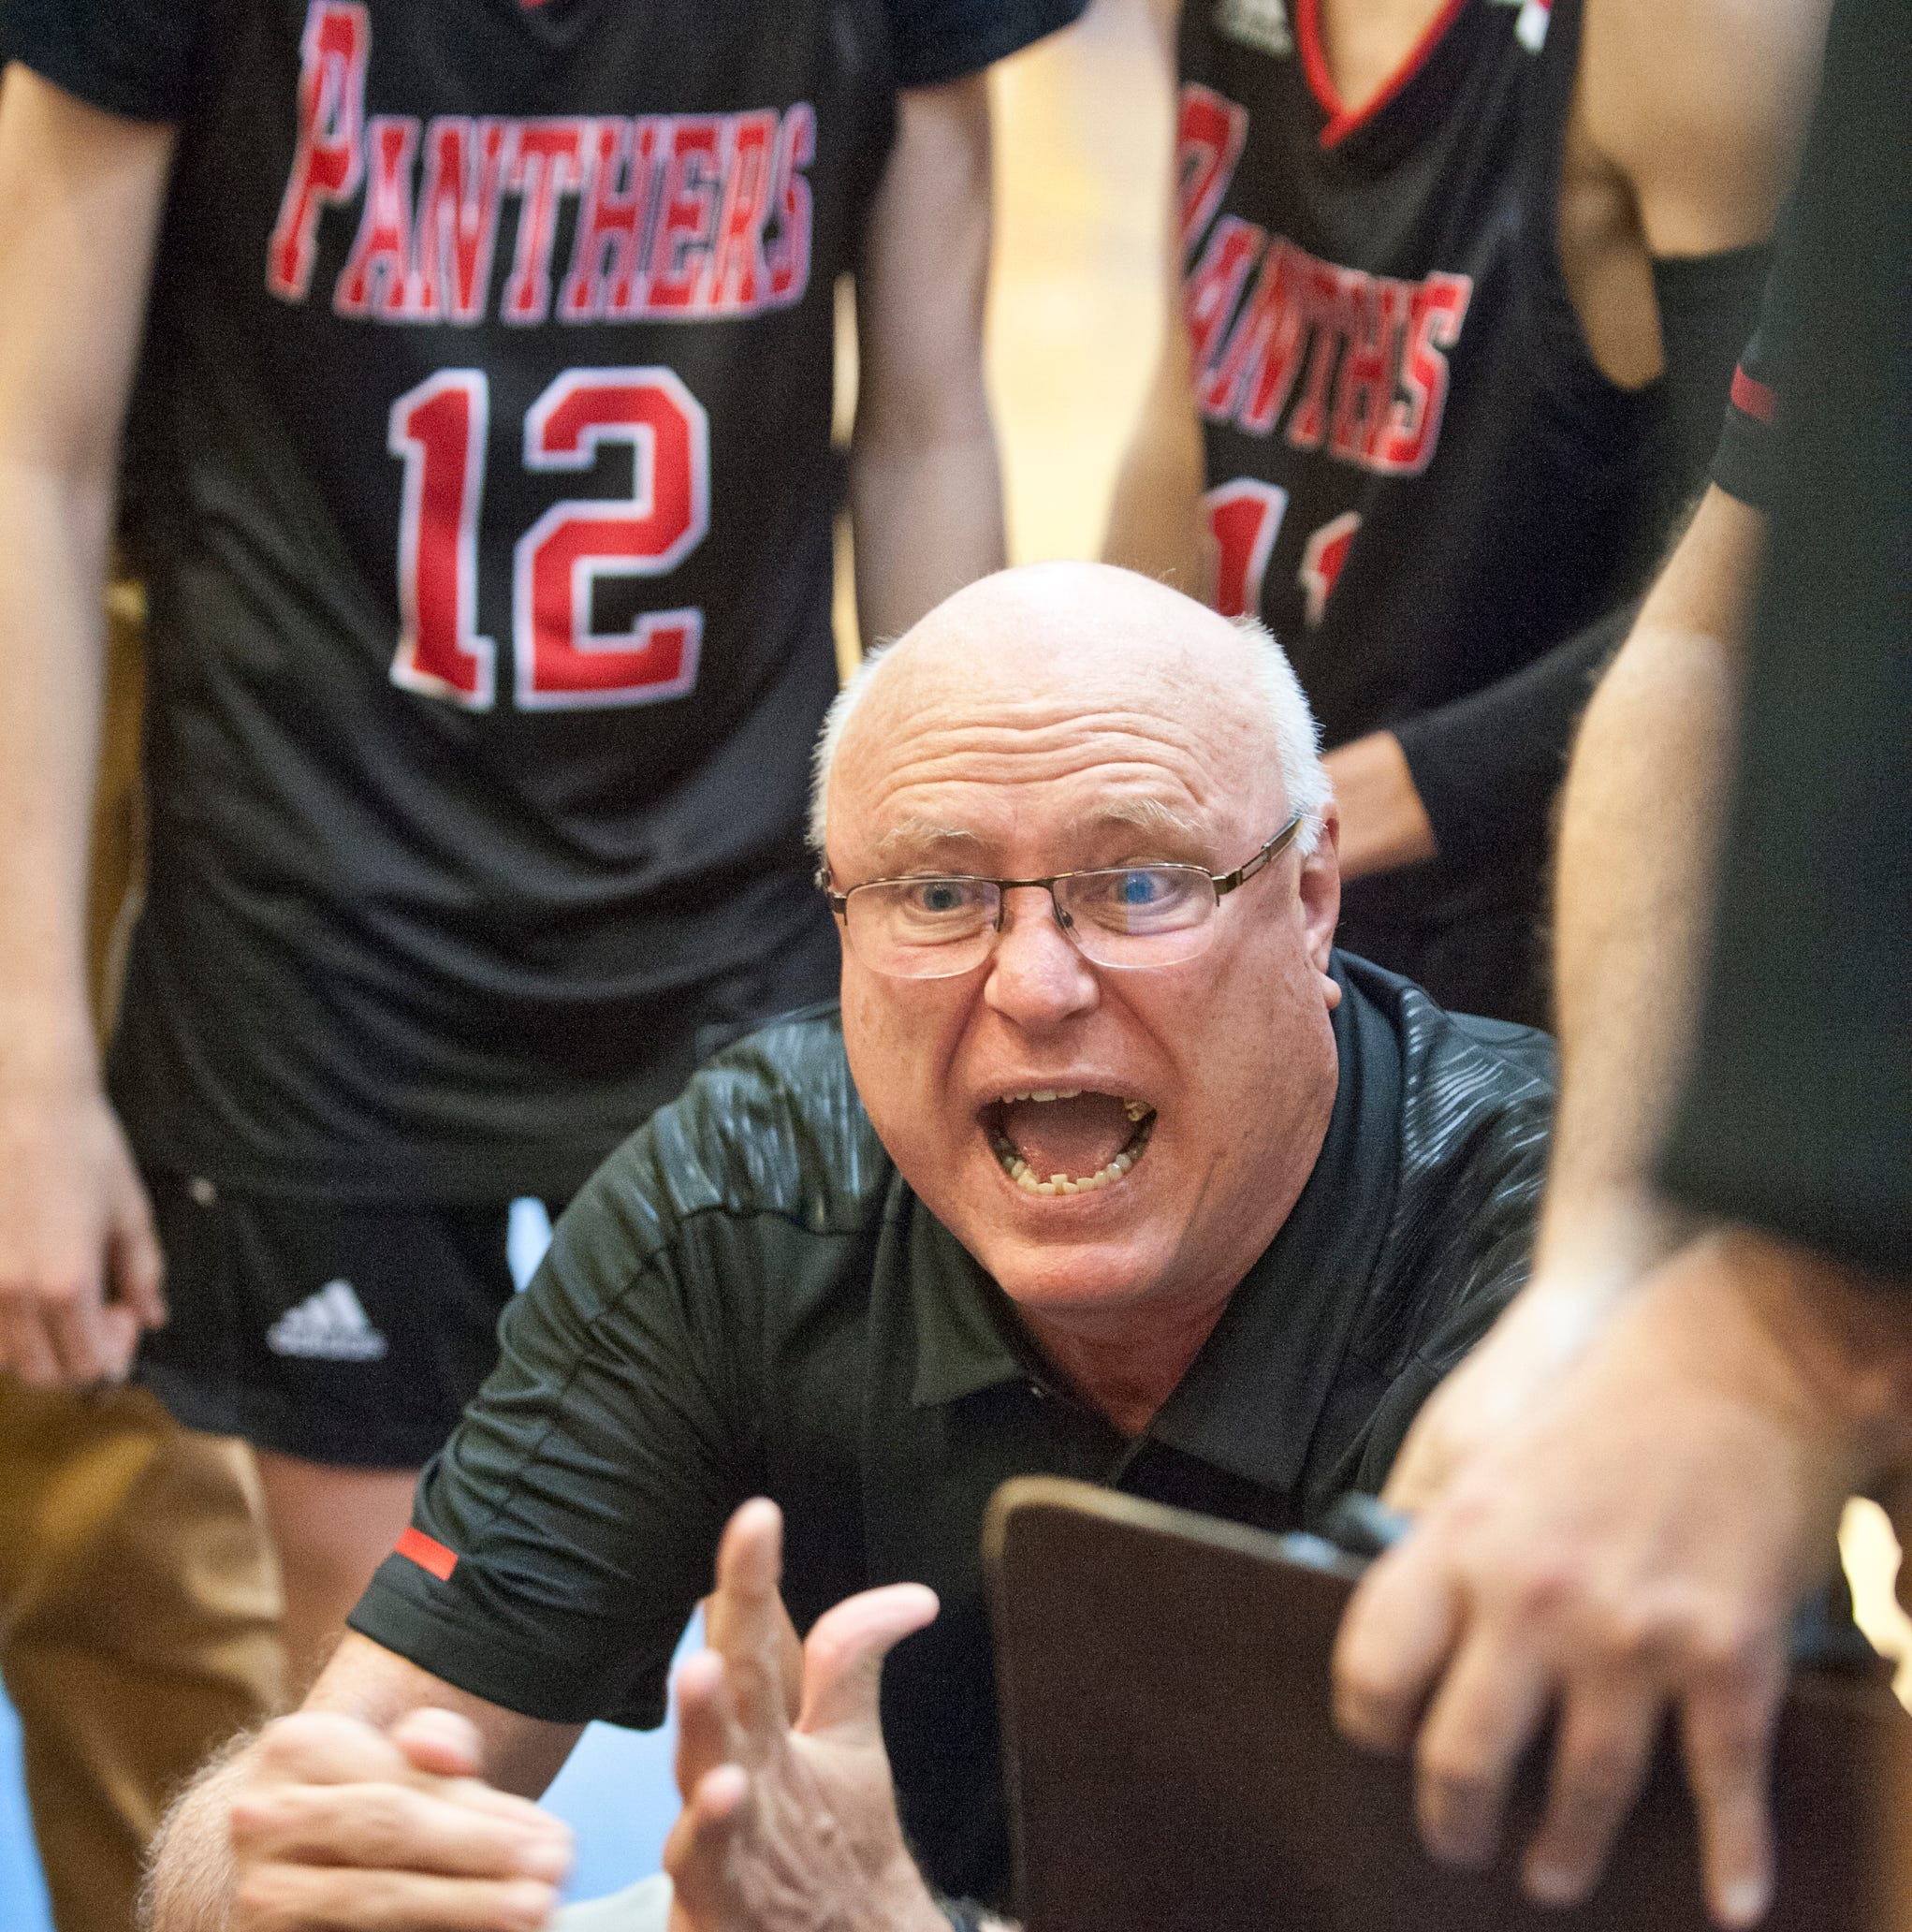 PRP's Dale Mabrey steps down after 38 seasons, 937 wins, 1 state championship